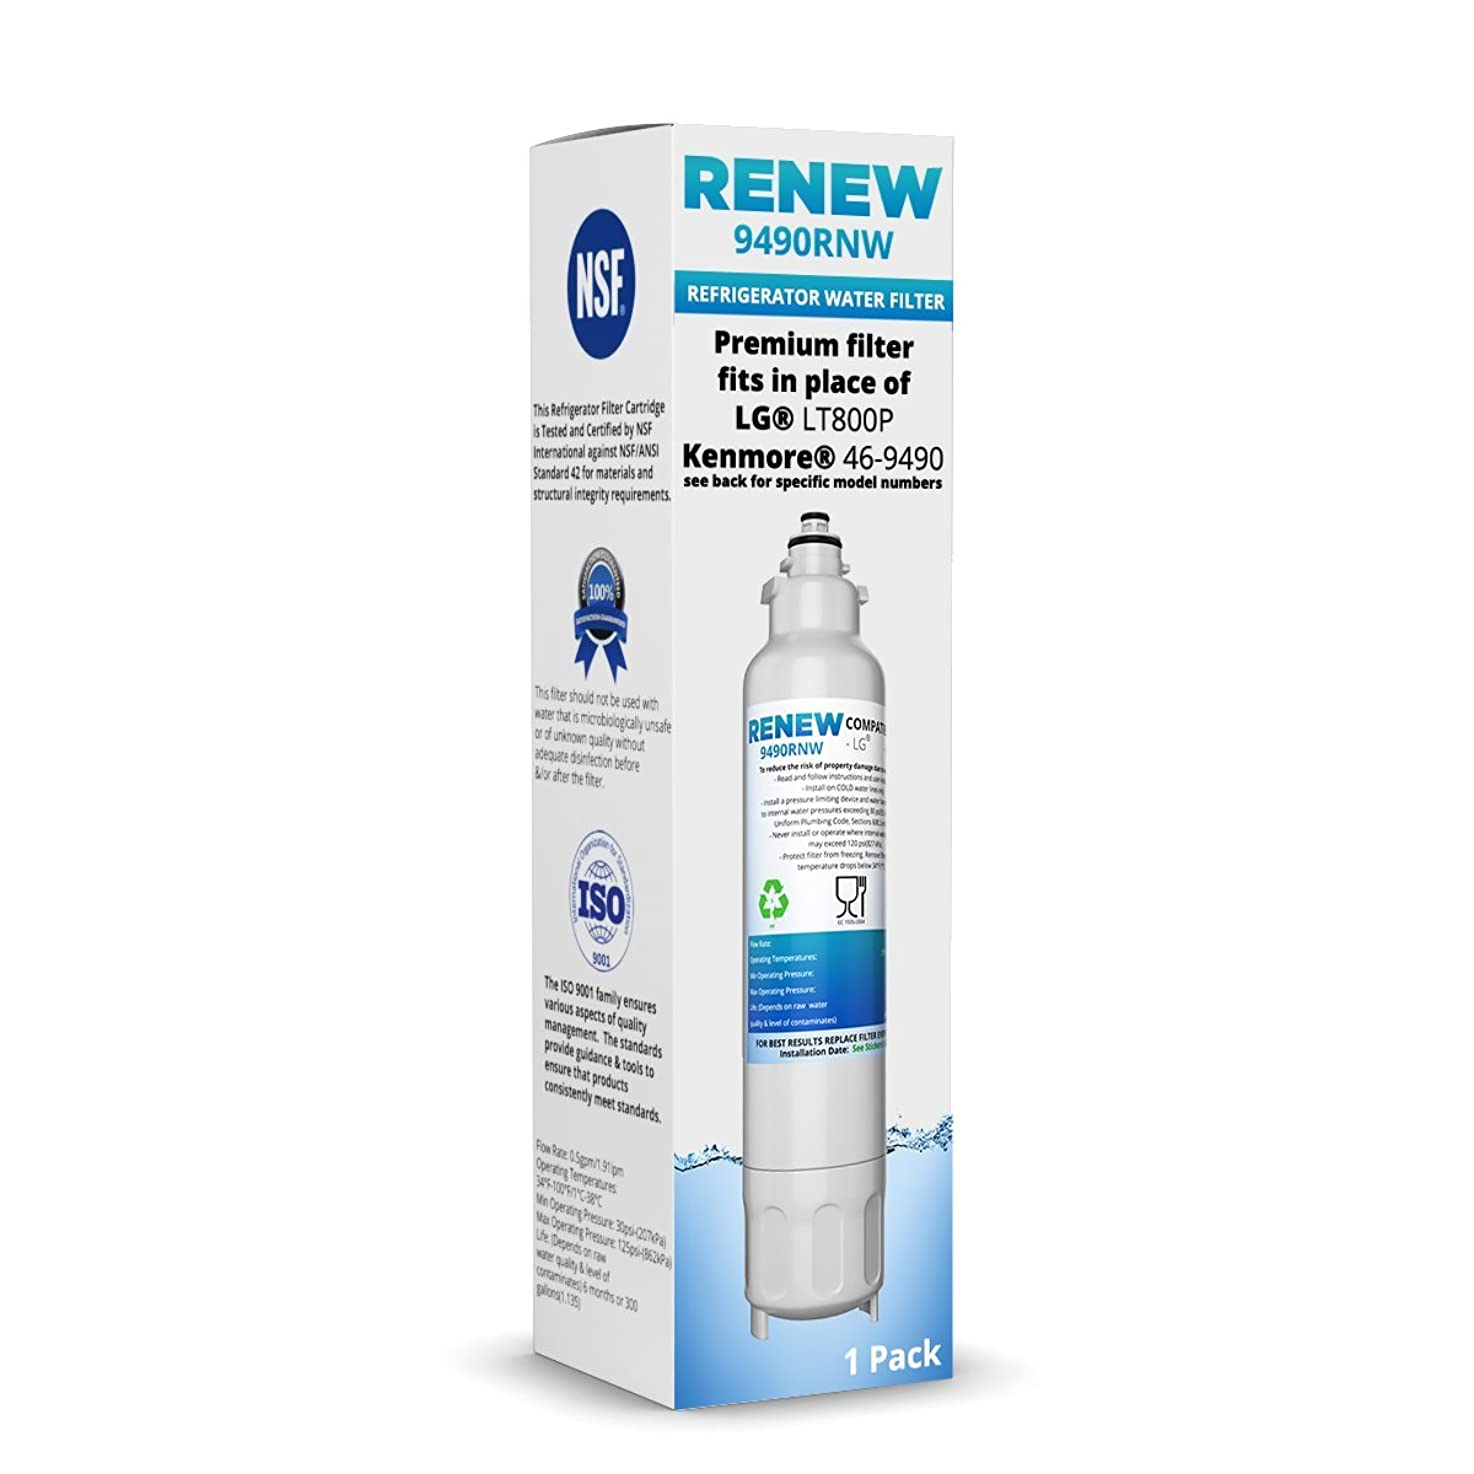 Renew Replacement for LG LT800P, ADQ73613401 and Kenmore Elite 46-9490, 9490, 469490, ADQ73613402 Refrigerator Water Filter (1 Pack)